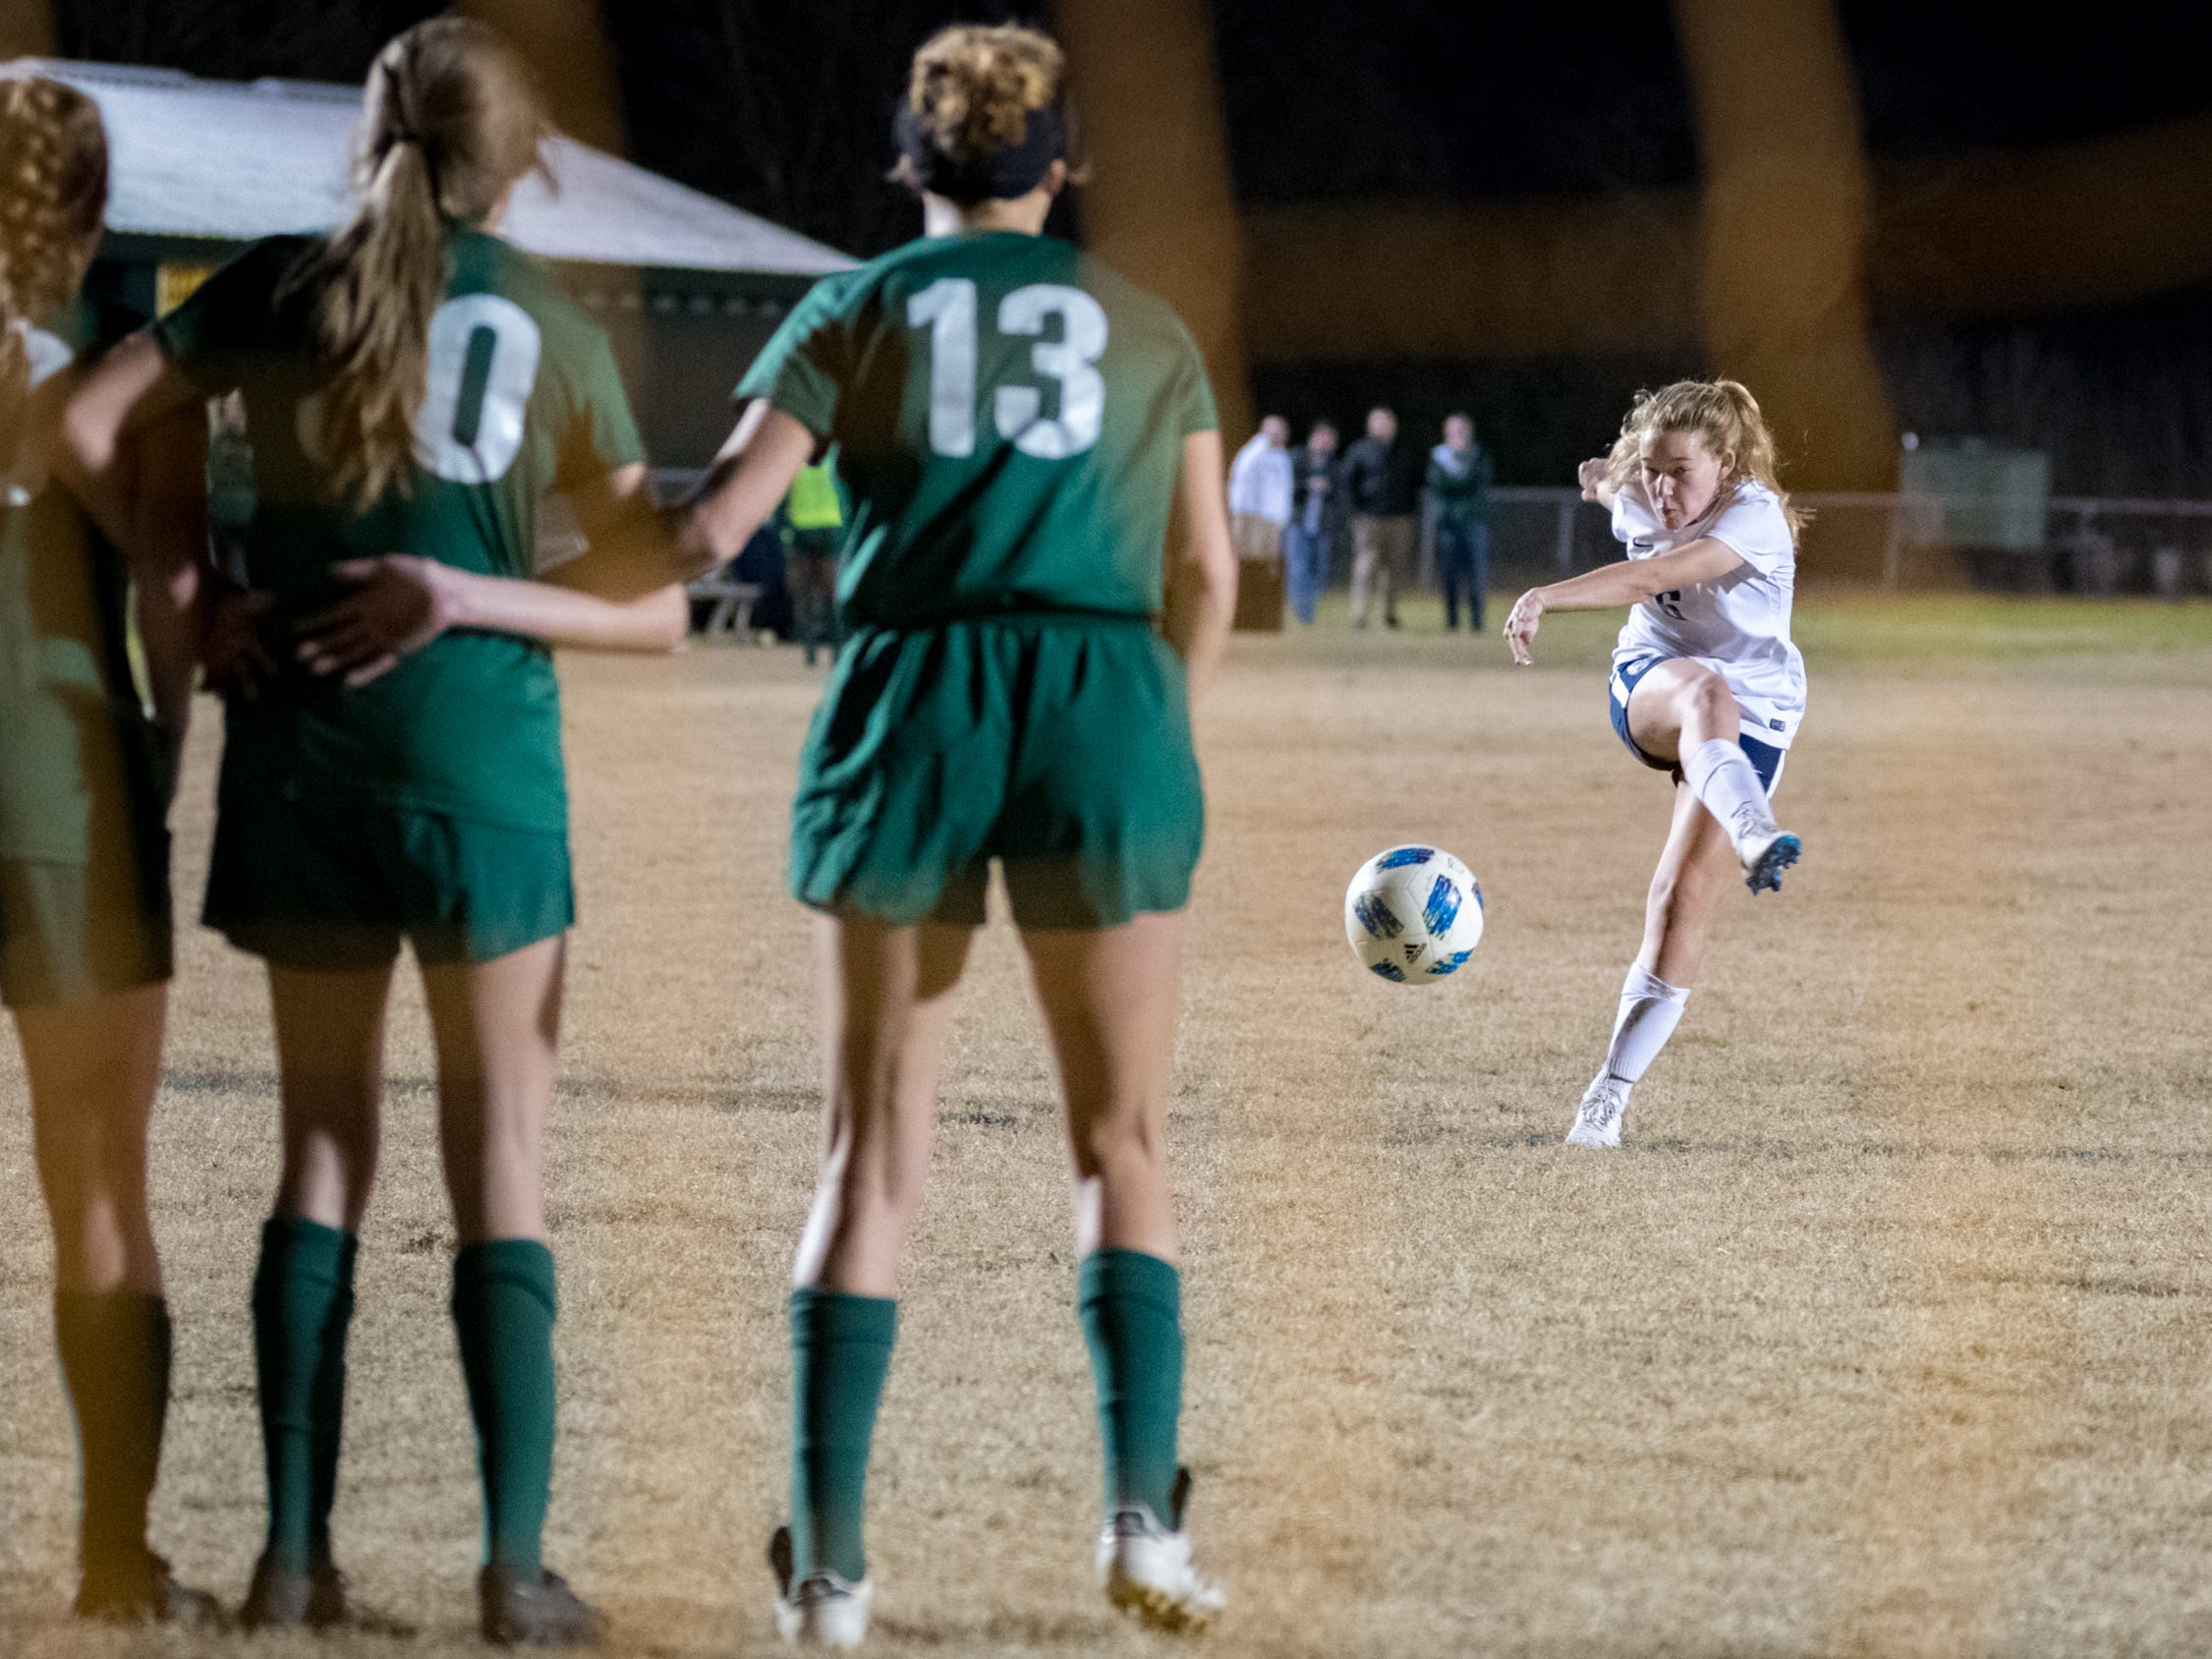 Avery Quoyeser scores a goal as Acadiana takes on STM girls soccer. Monday, Jan. 28, 2019.